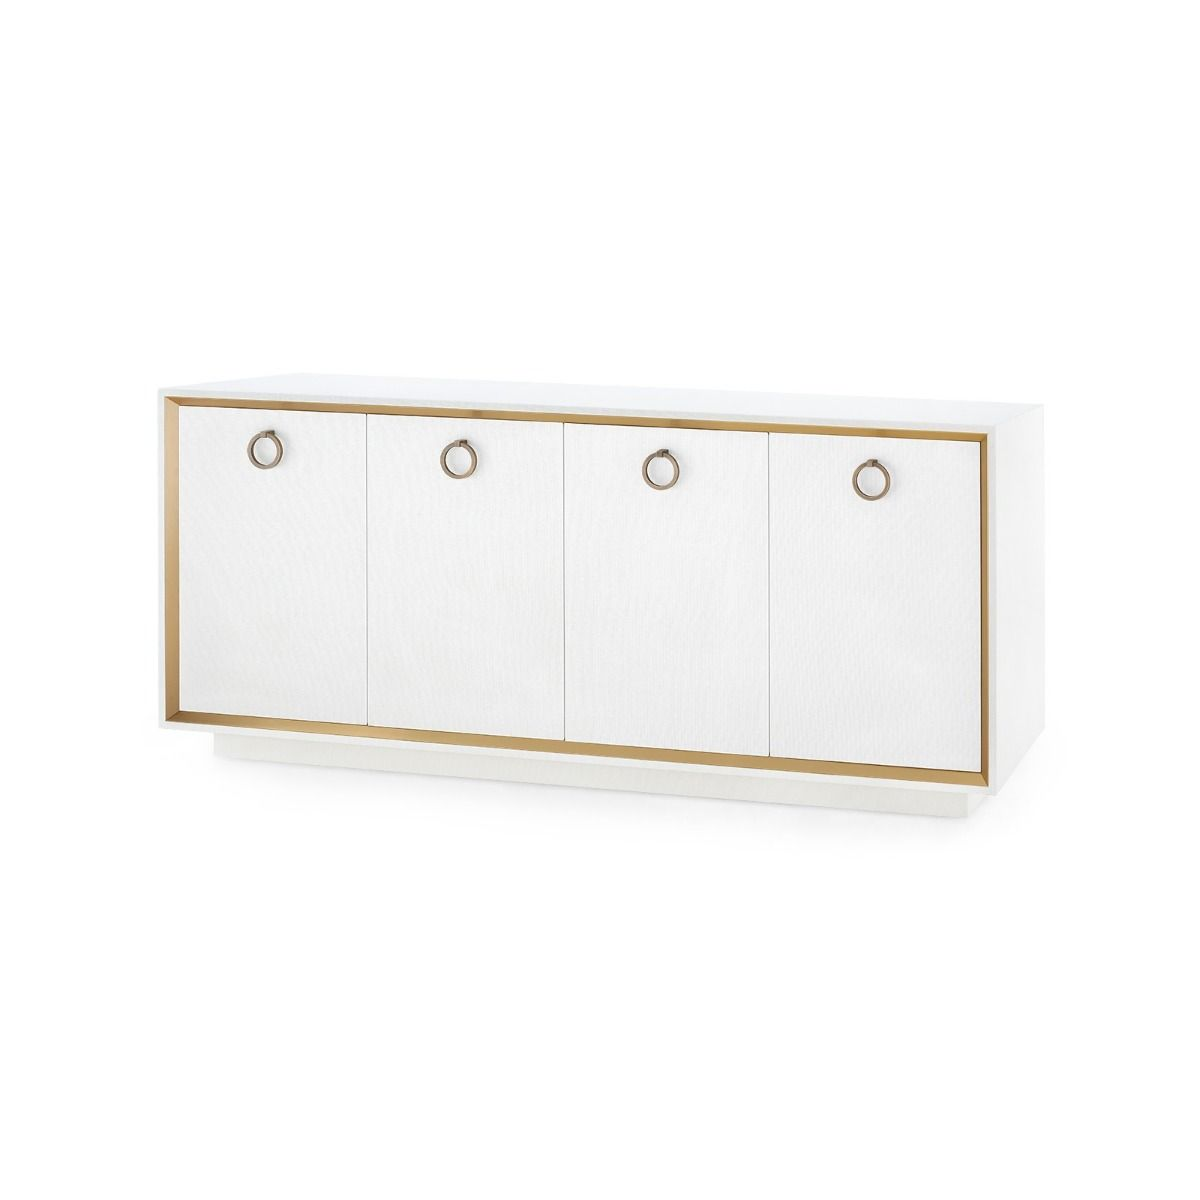 Bungalow 5 - ANSEL 4-DOOR CABINET, WHITE